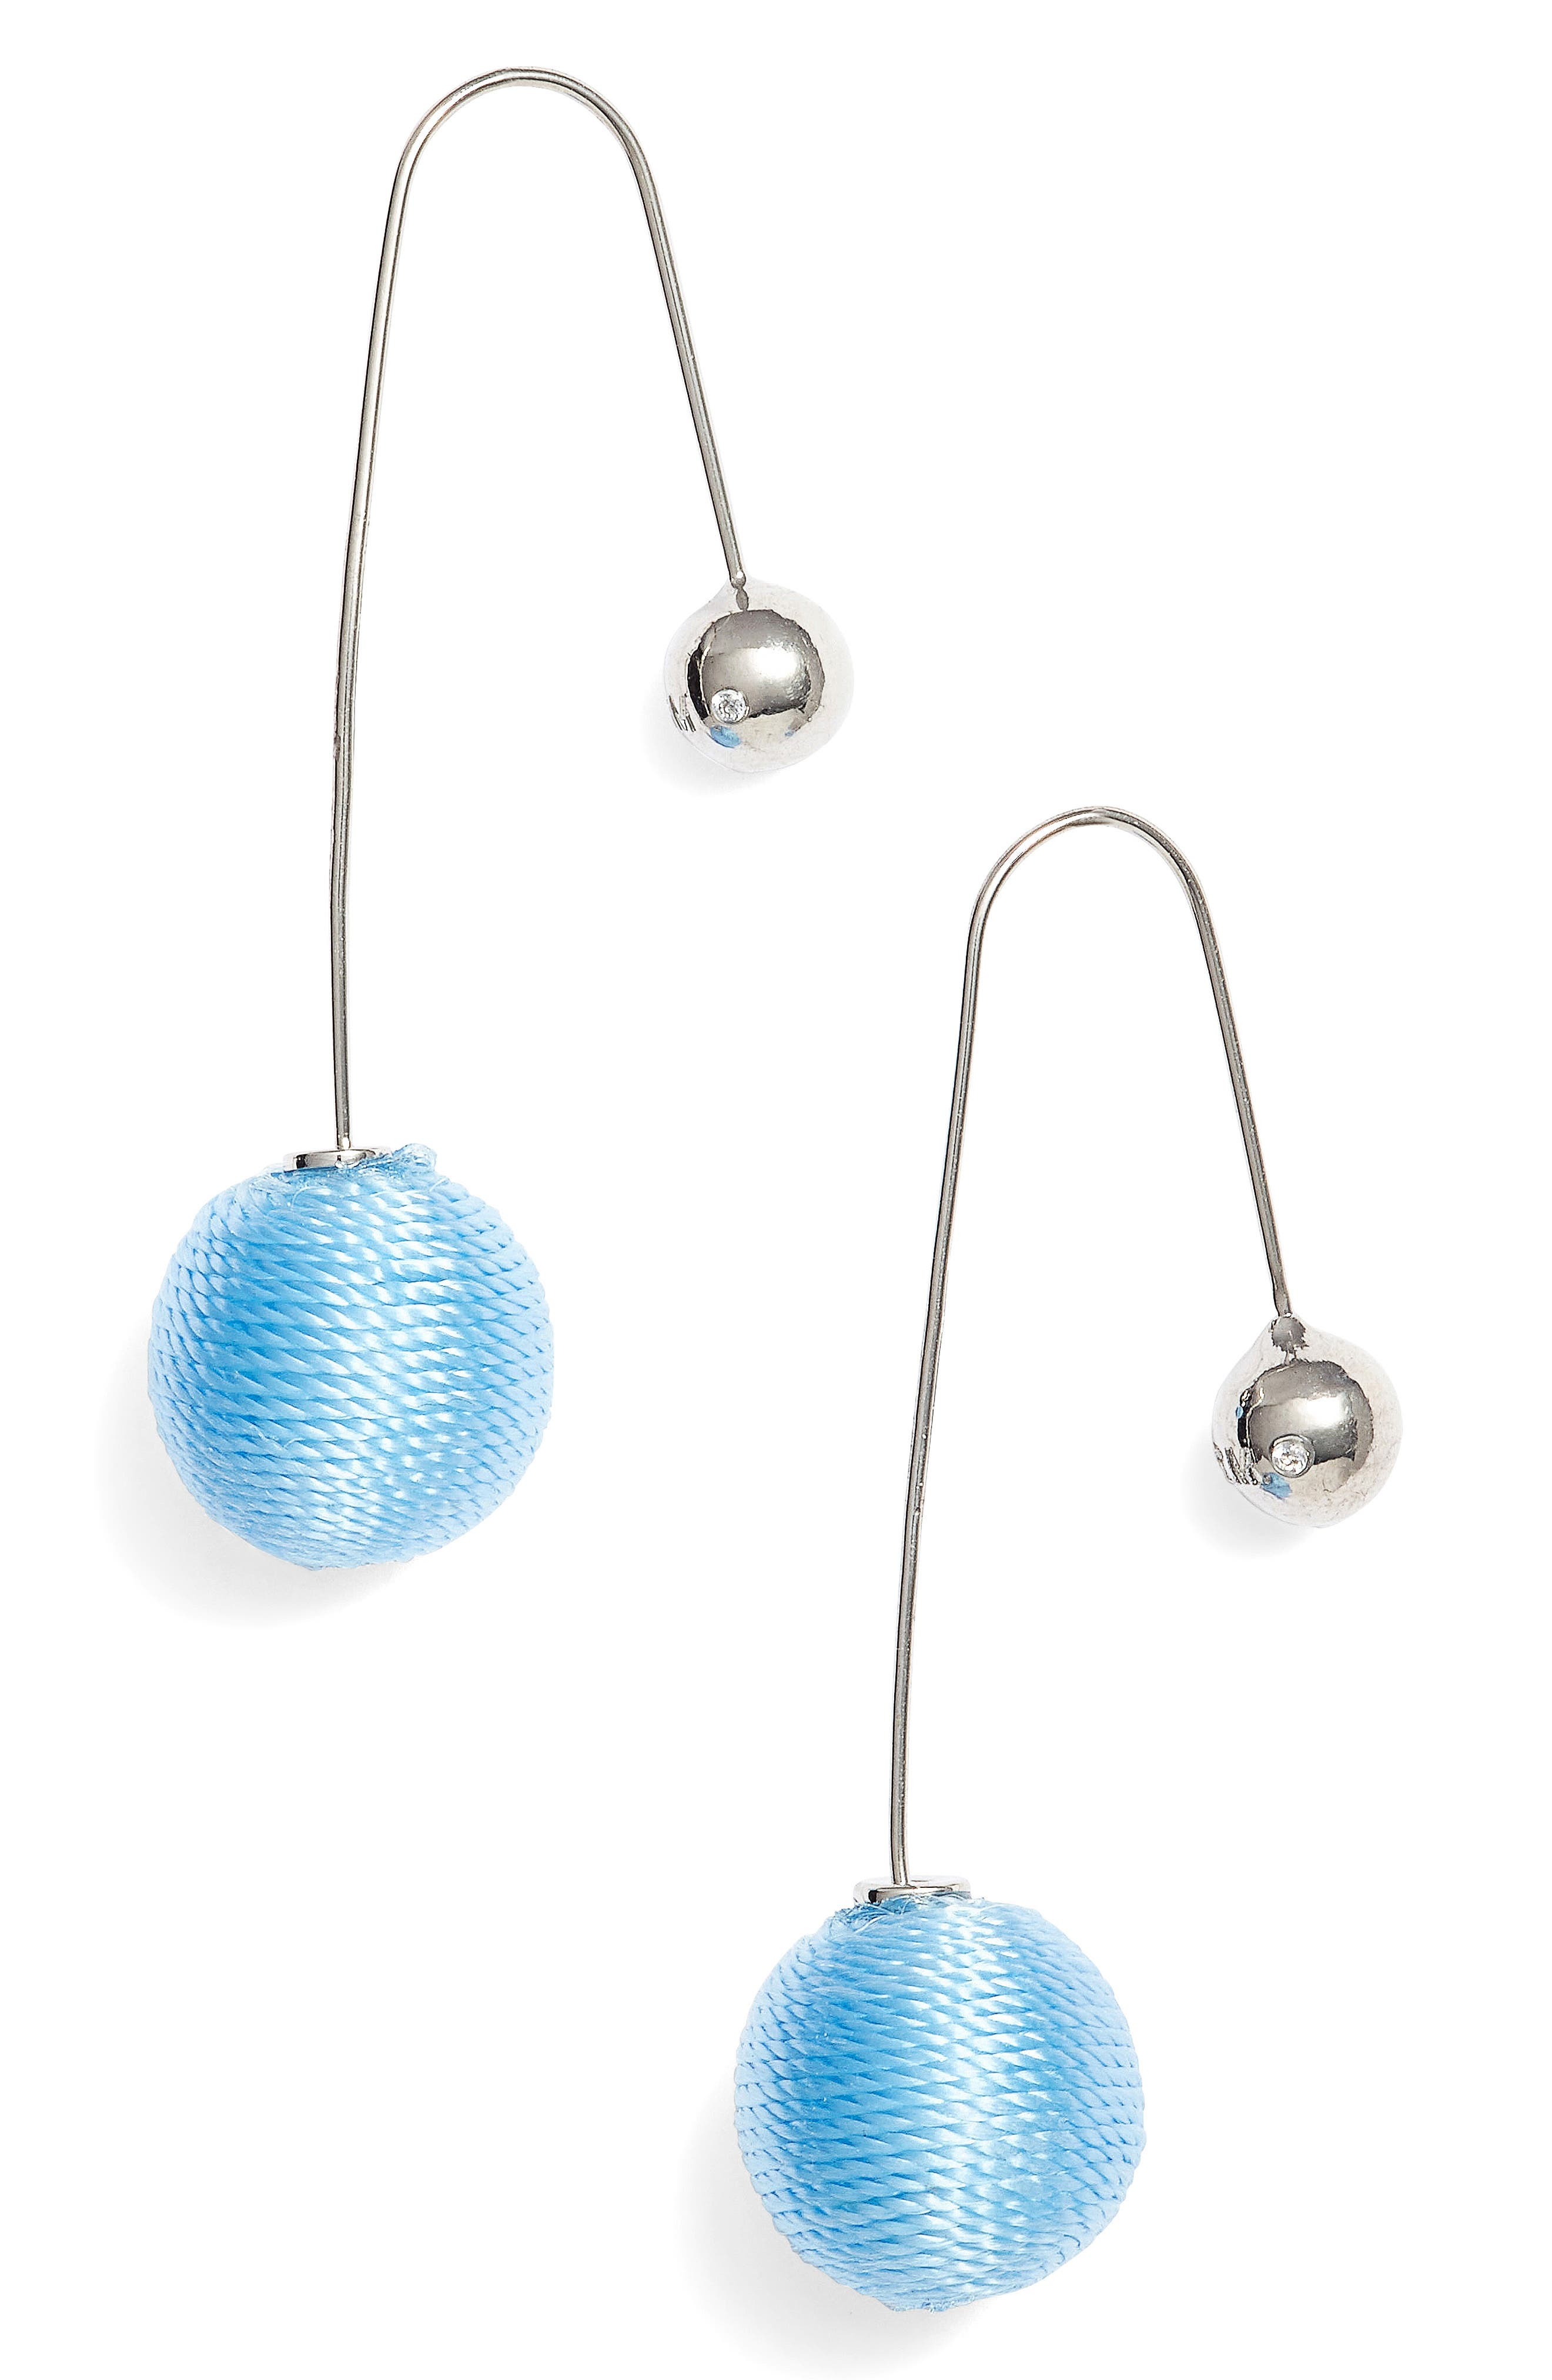 Contrast Sphere Threader Earrings,                         Main,                         color, Blue/ Silver